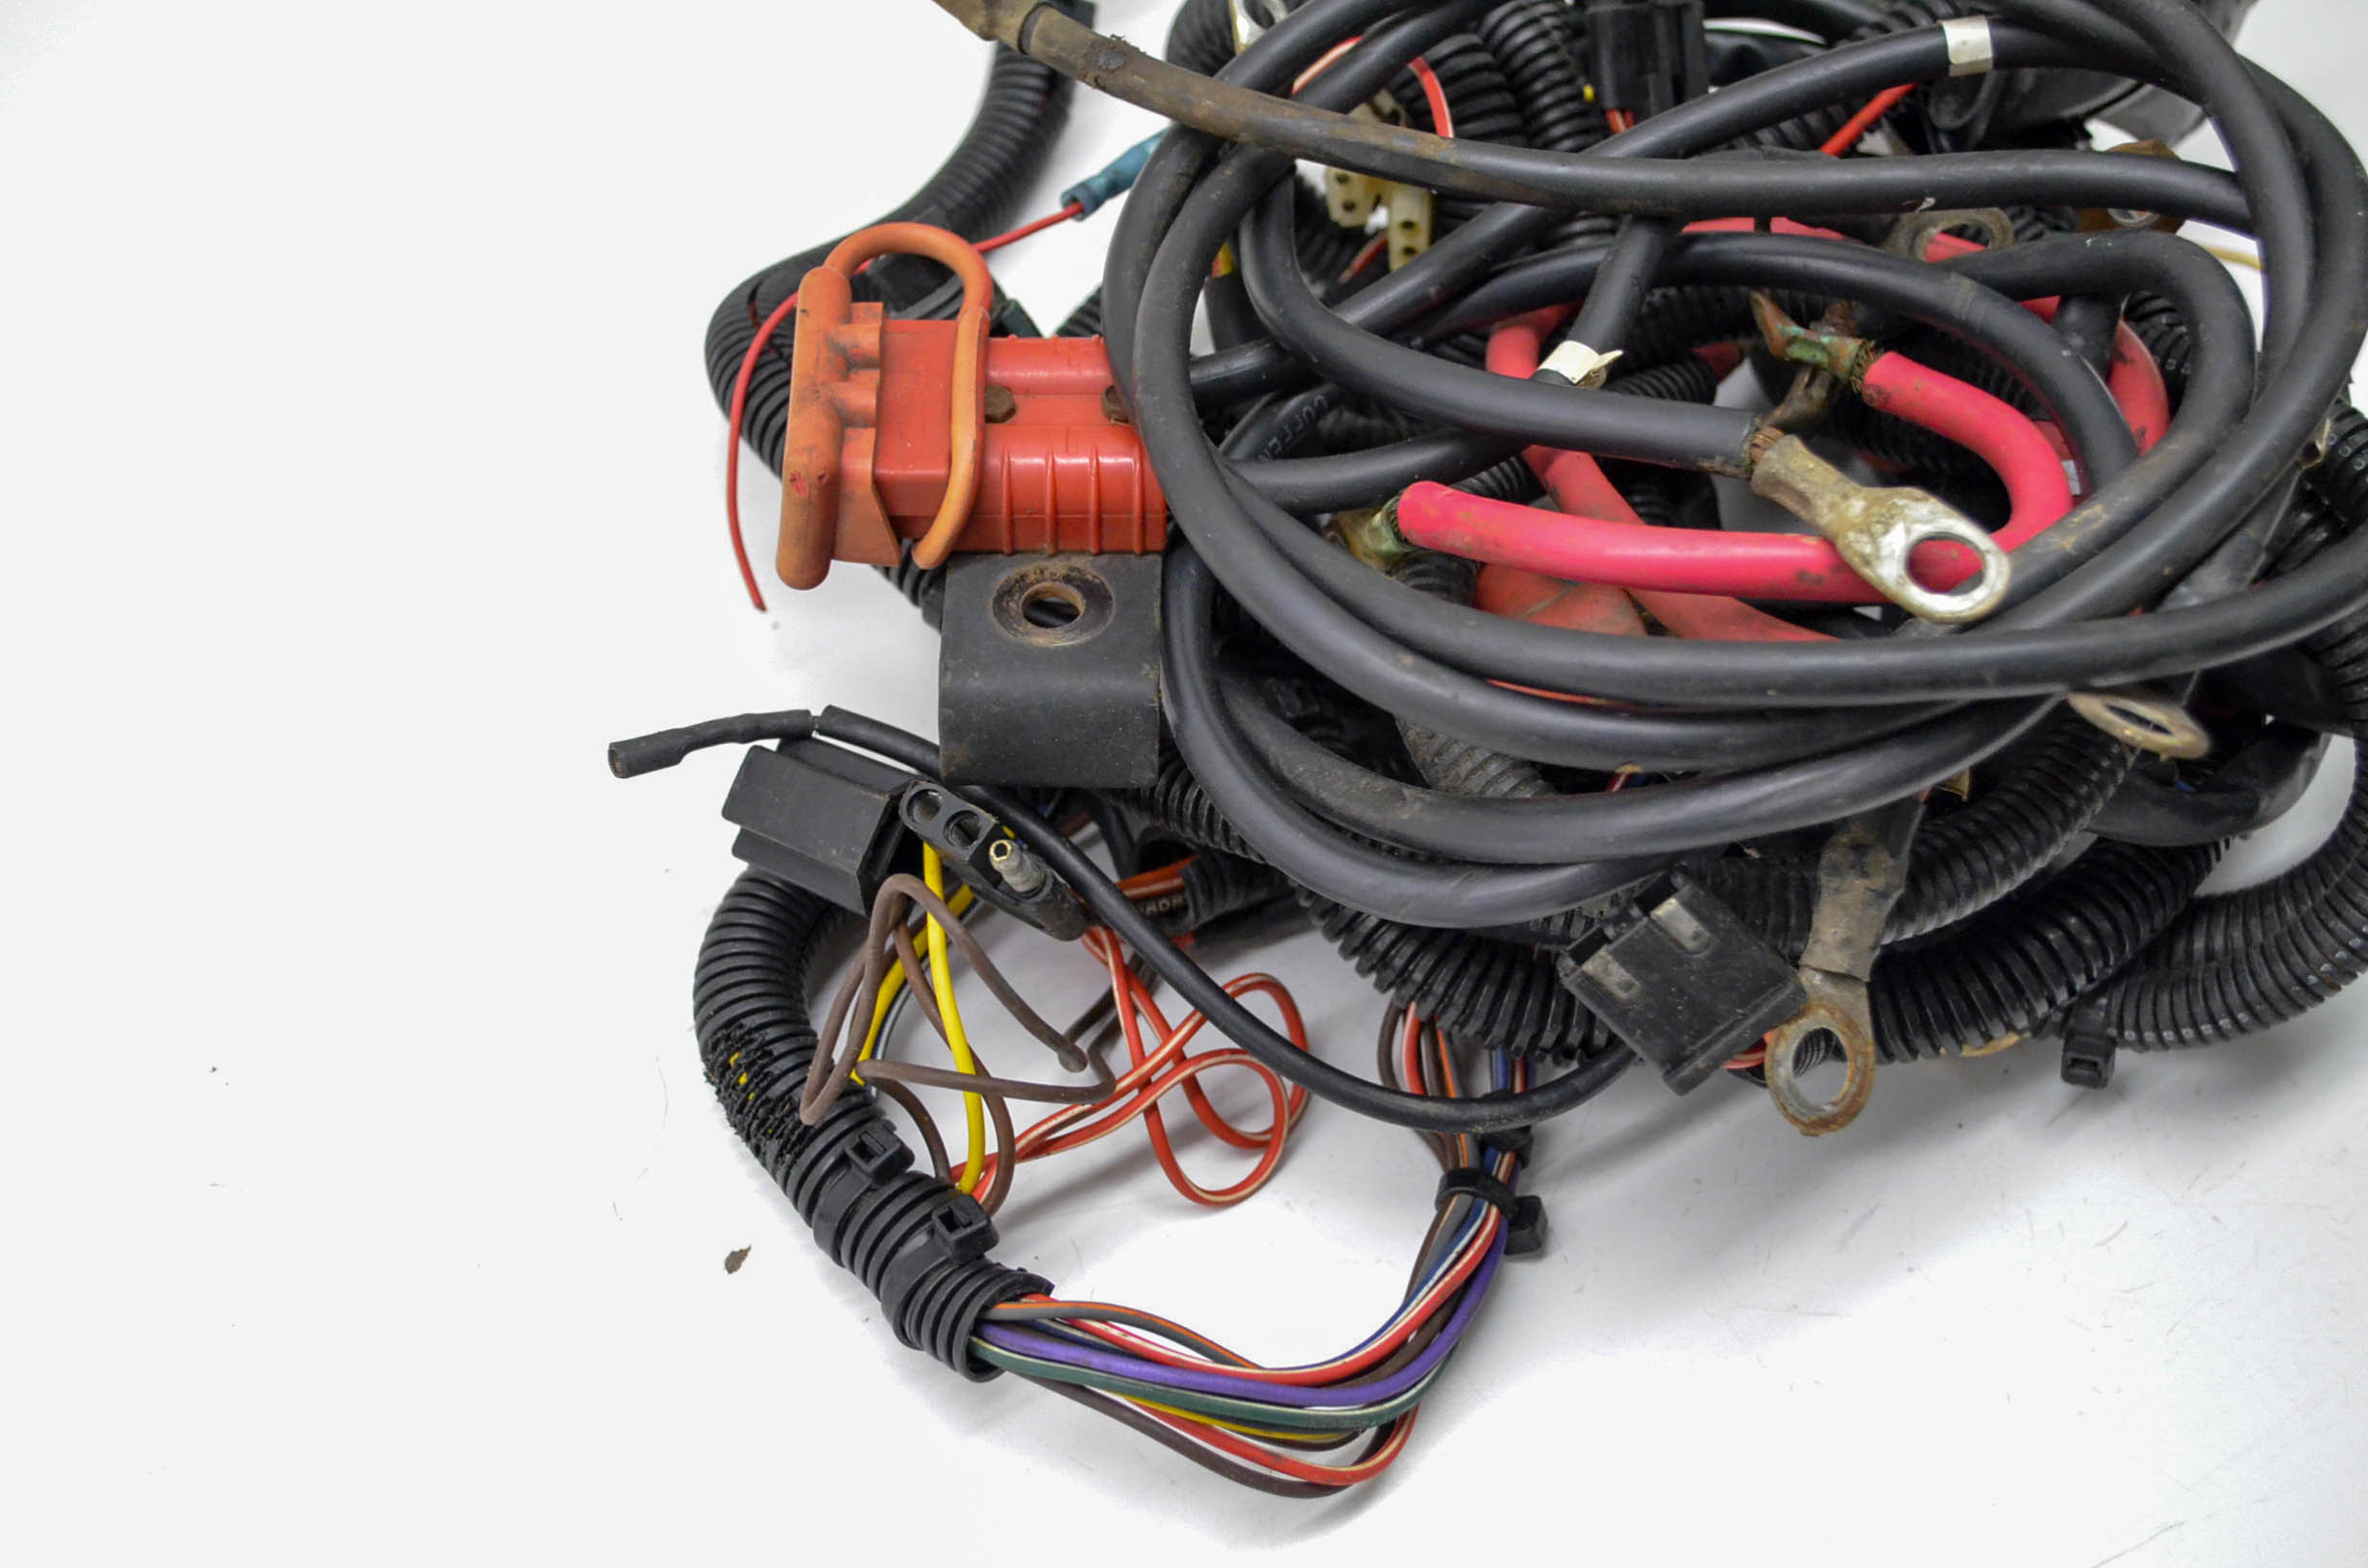 01 Polaris Sportsman 500 4x4 Wire Harness Electrical Wiring Ebay Connectors Gallery Image